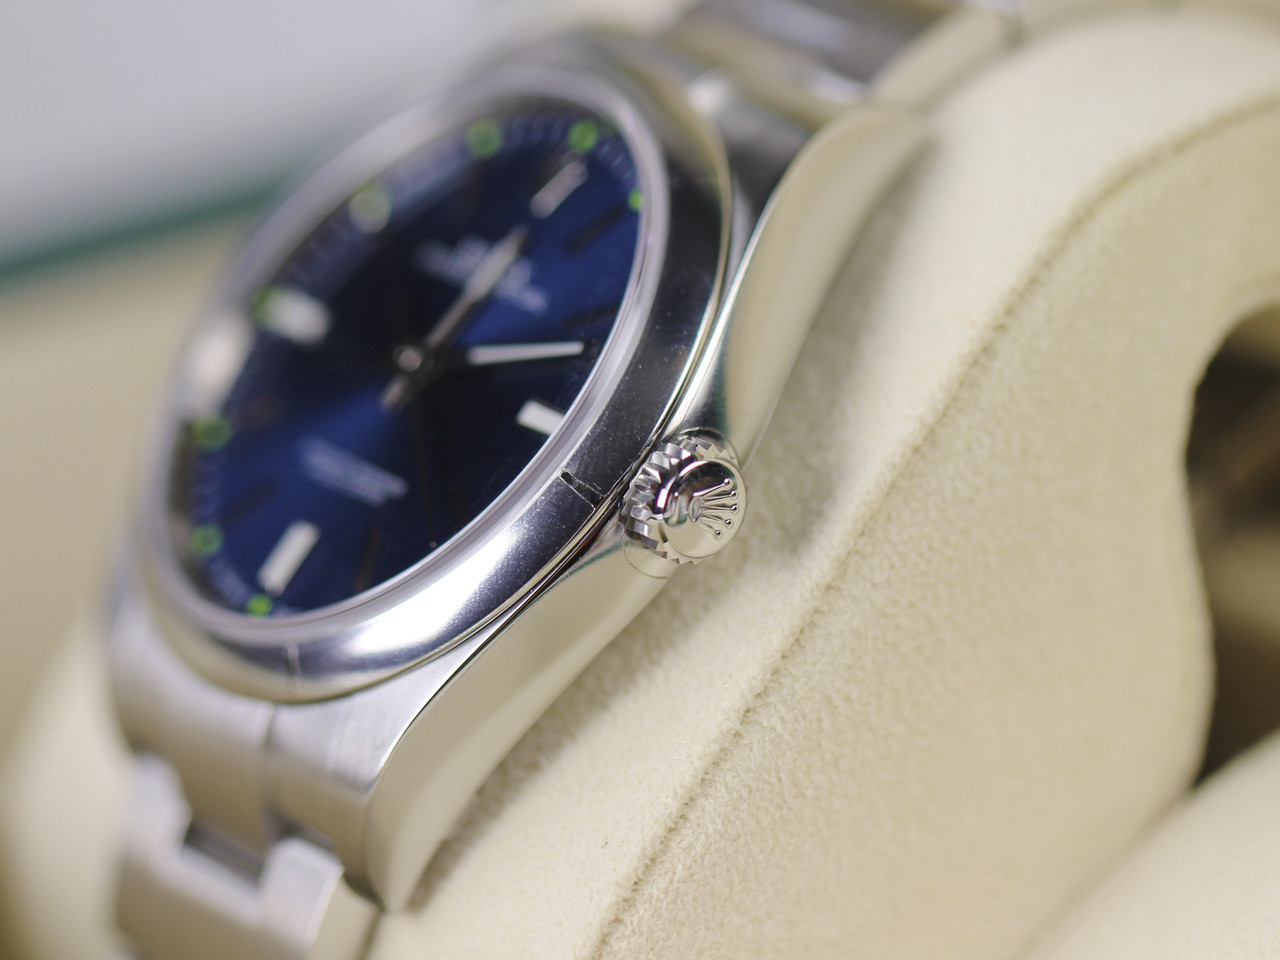 Crown Detail - Rolex Watch - Oyster Perpetual 39 Blue 114300 - New for sale online www.Legendoftime.com and in store Legend of Time - Chicago Watch Center